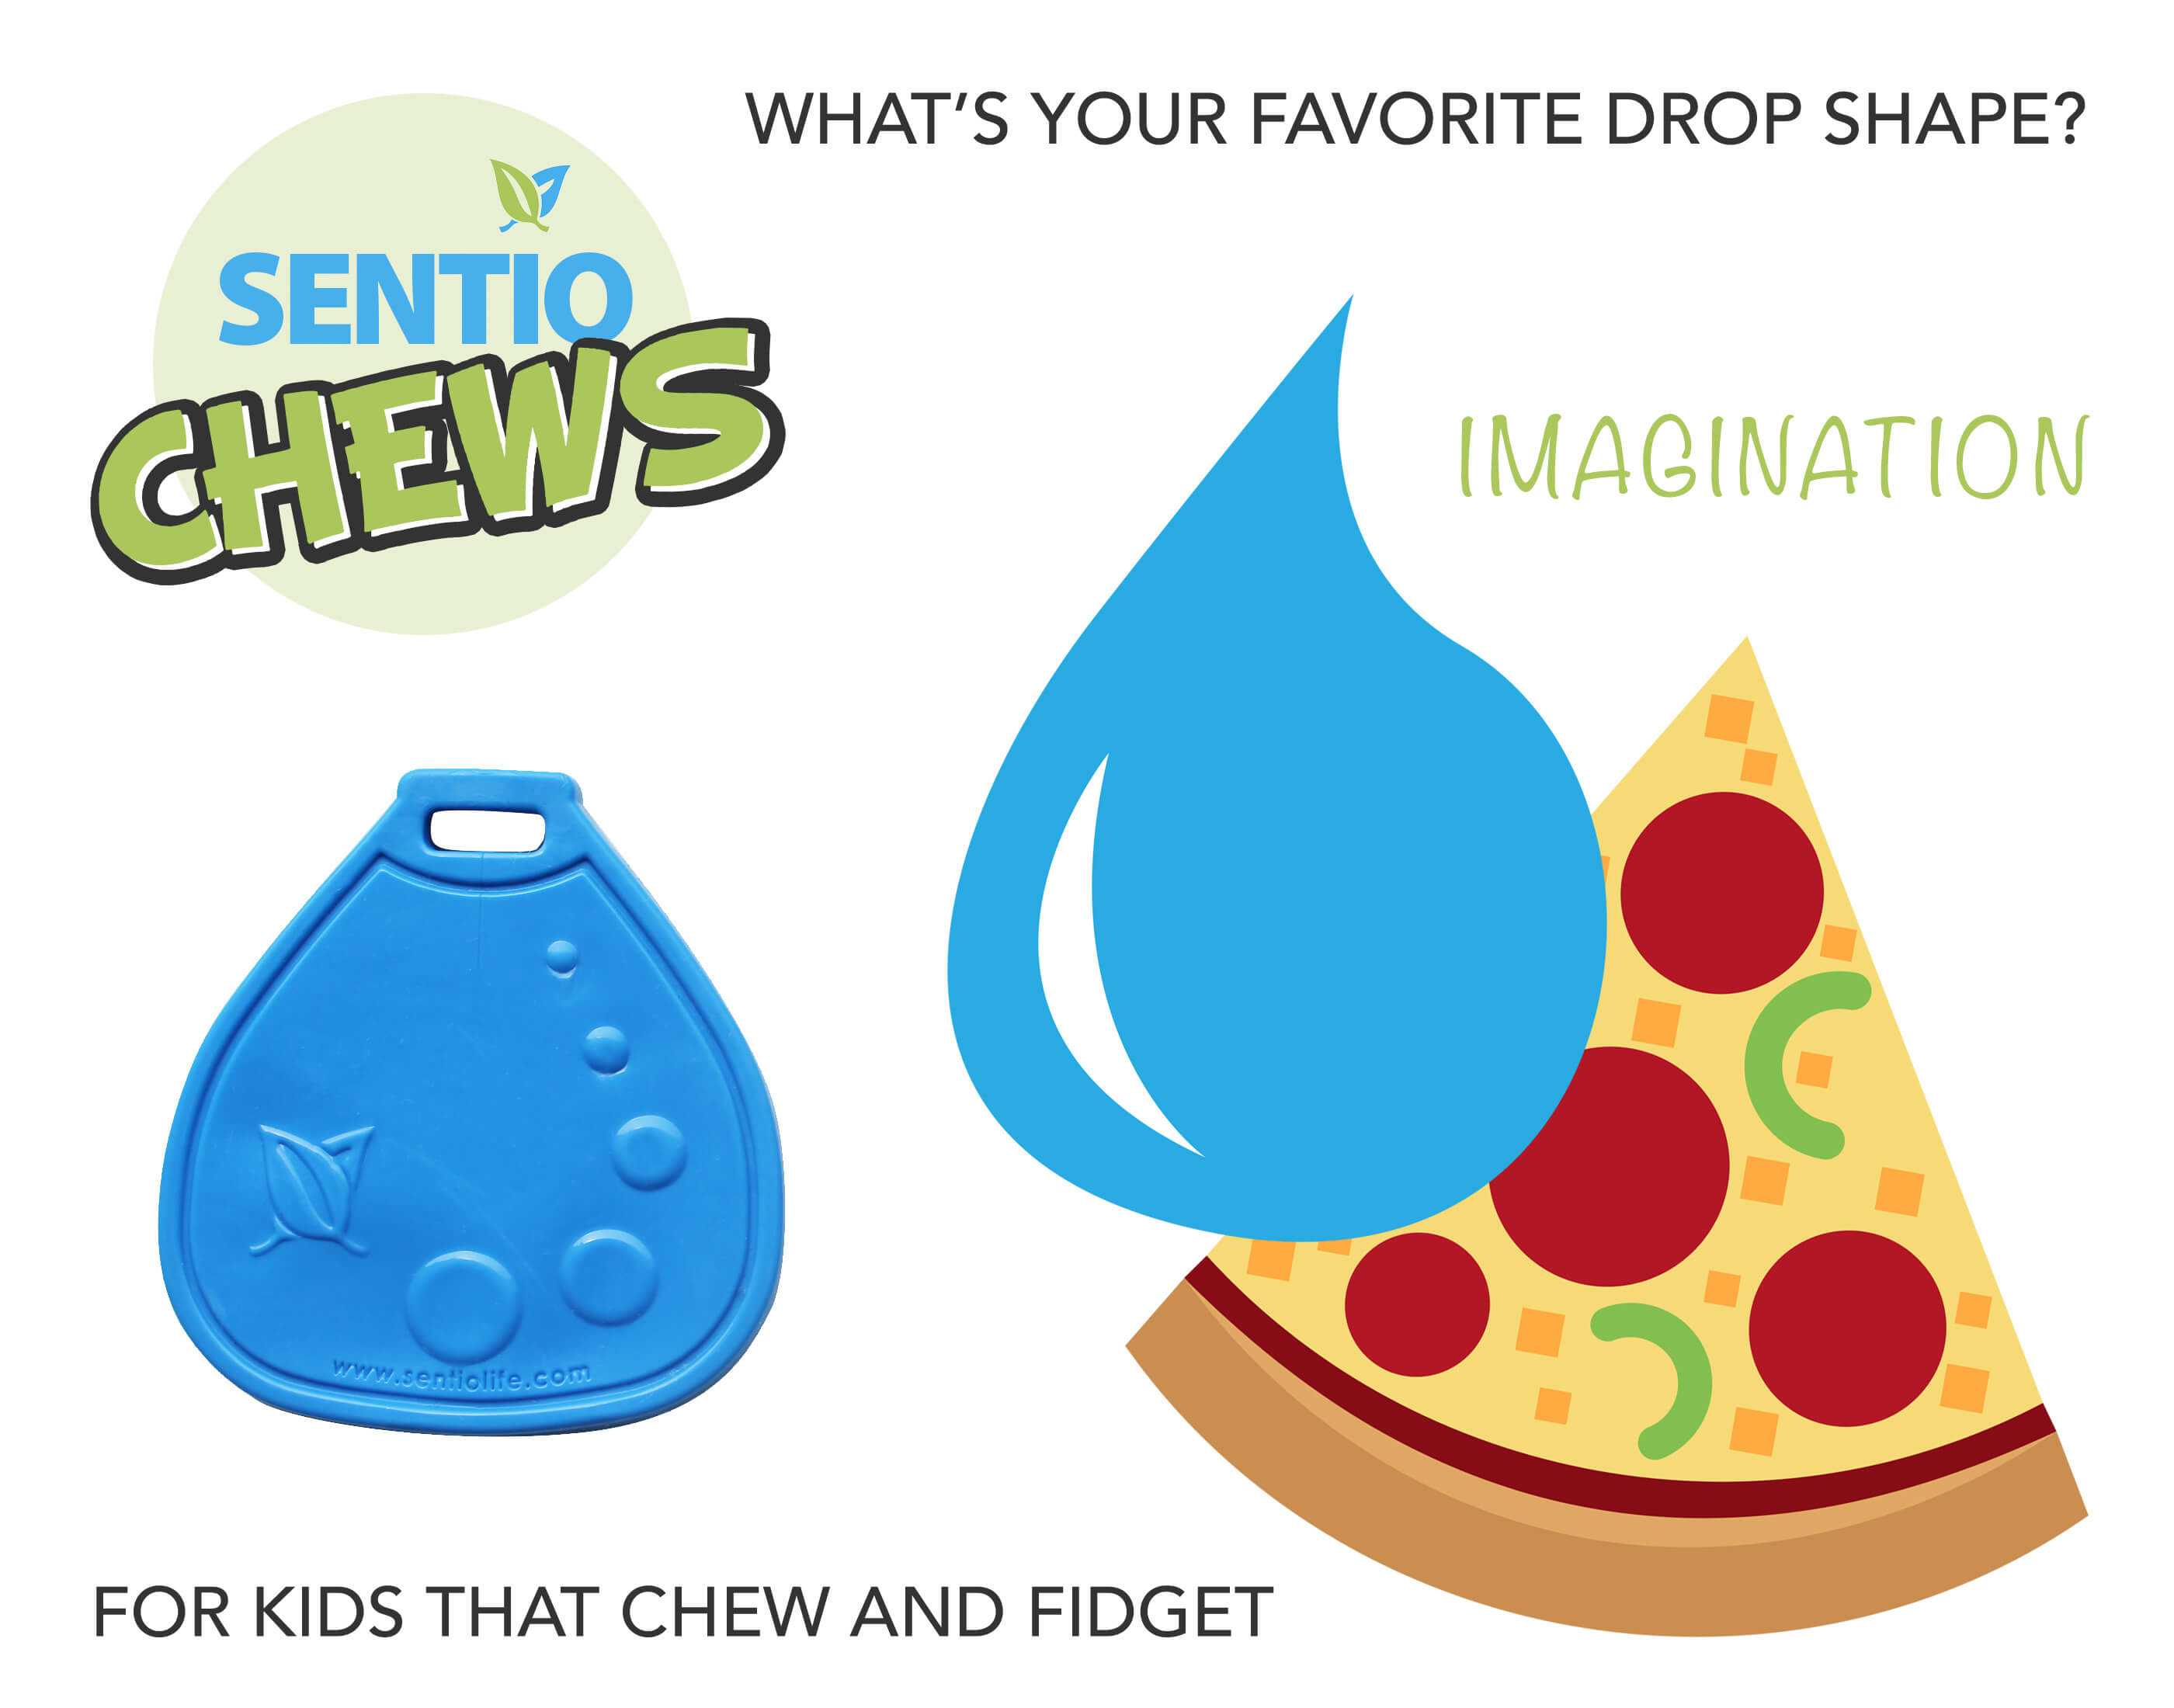 chewelry drop shape Pizza, Water Drop imagery